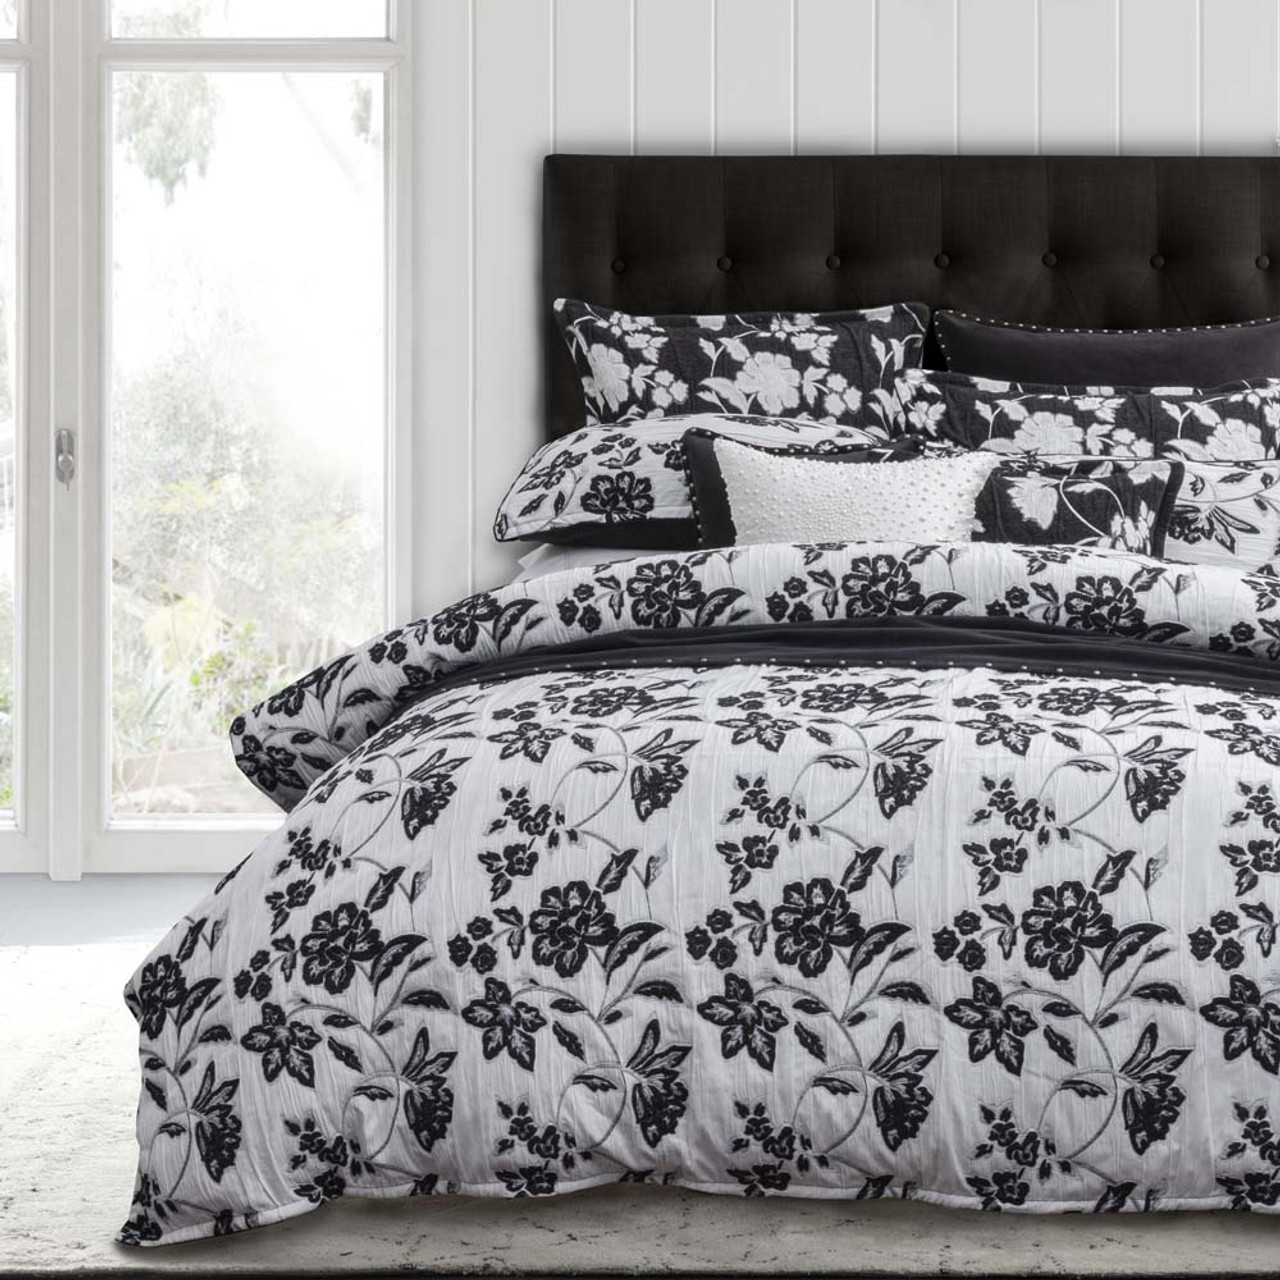 Marinda Night Quilt Cover Set By Private Collection Queen Bed My Linen